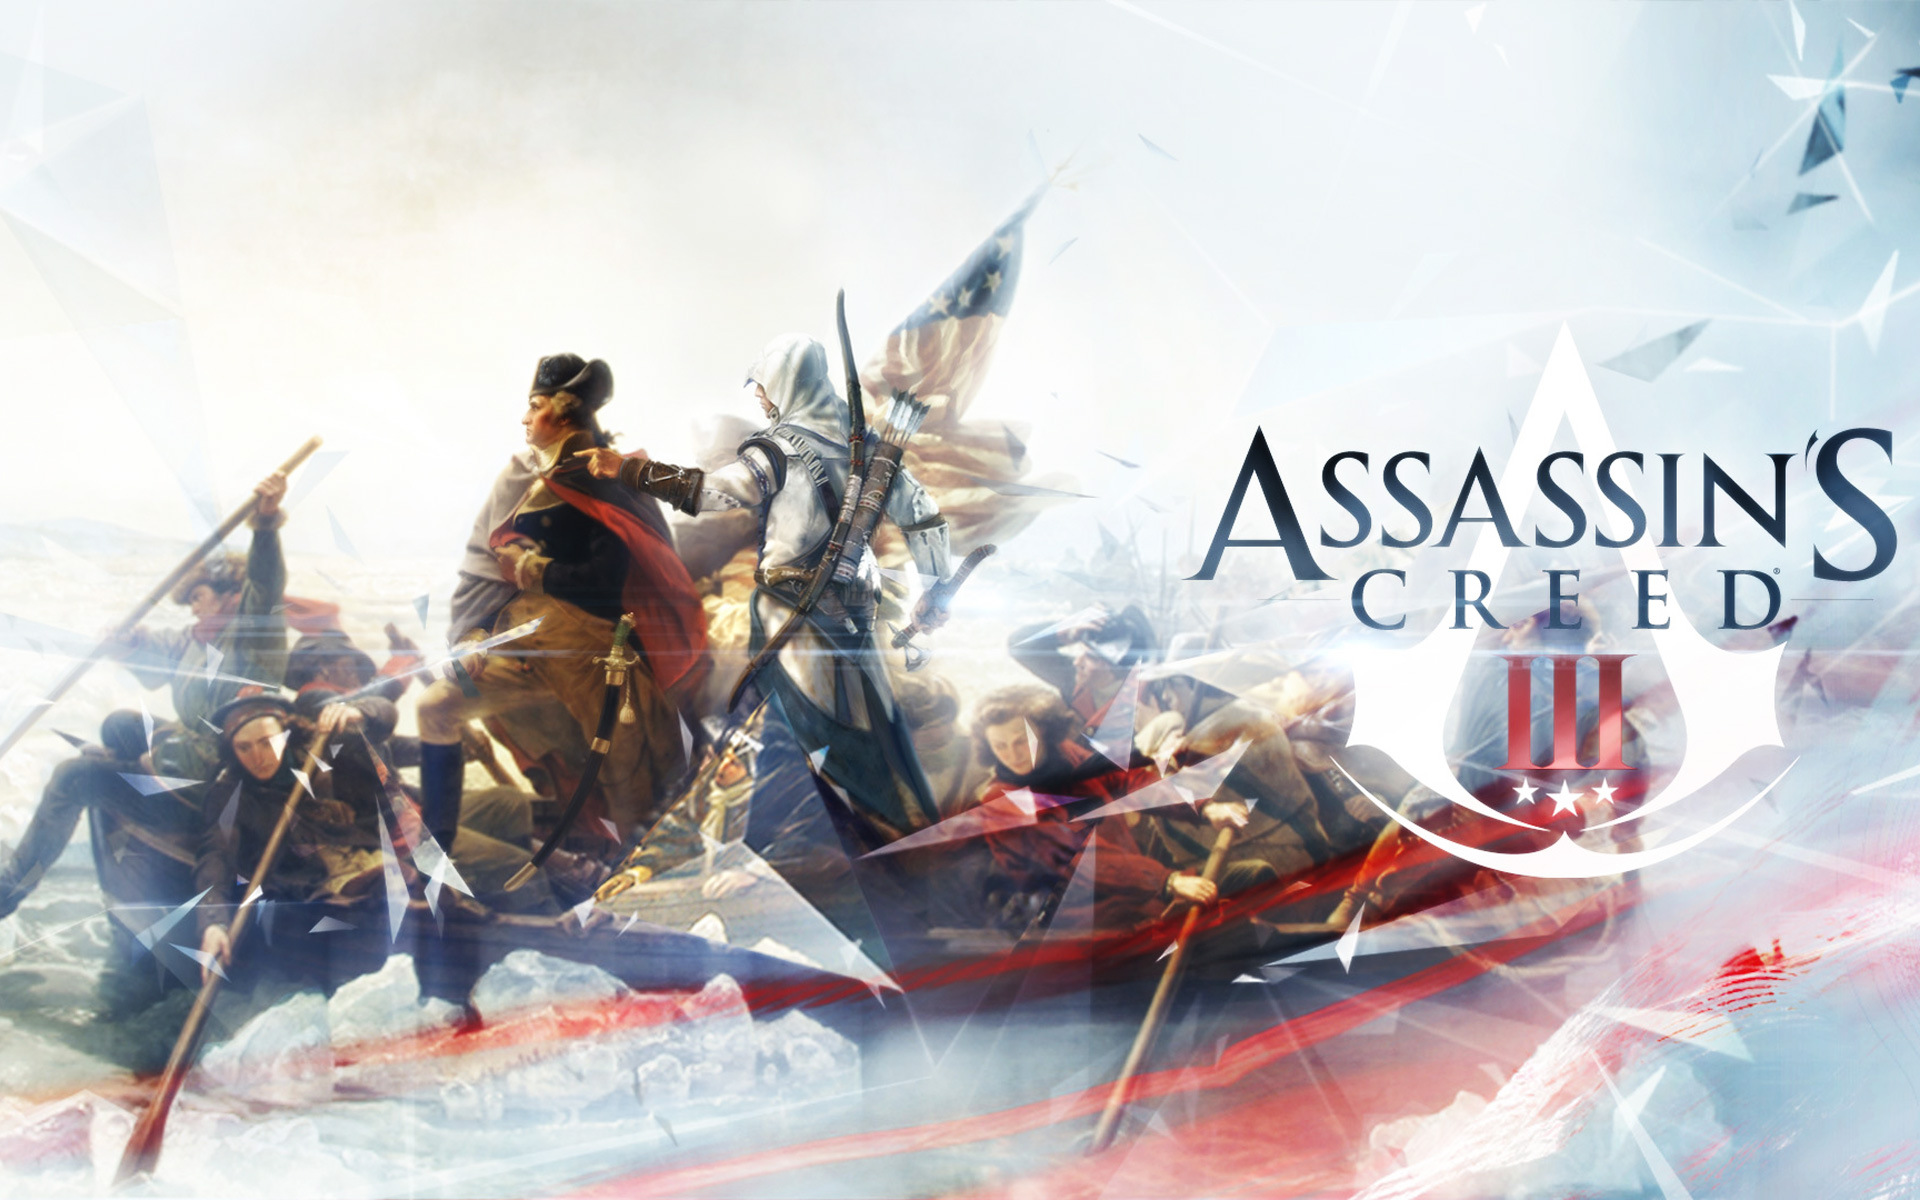 assassins-creed-iii-delaware-1920x1200.jpg